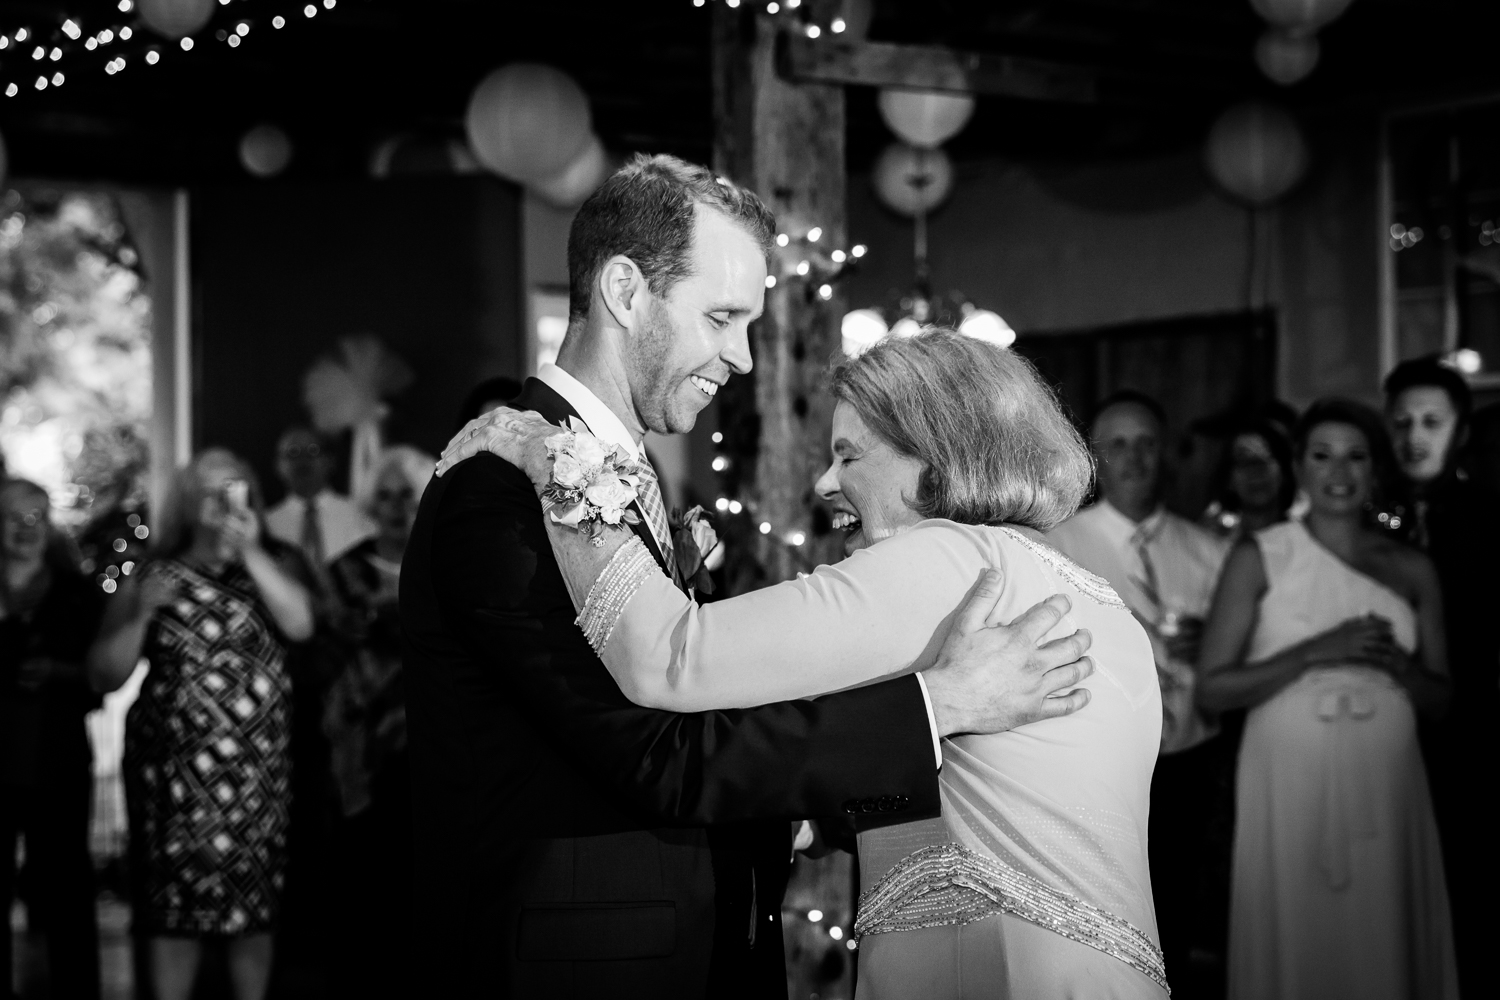 Mother and groom share a dance in a barn.